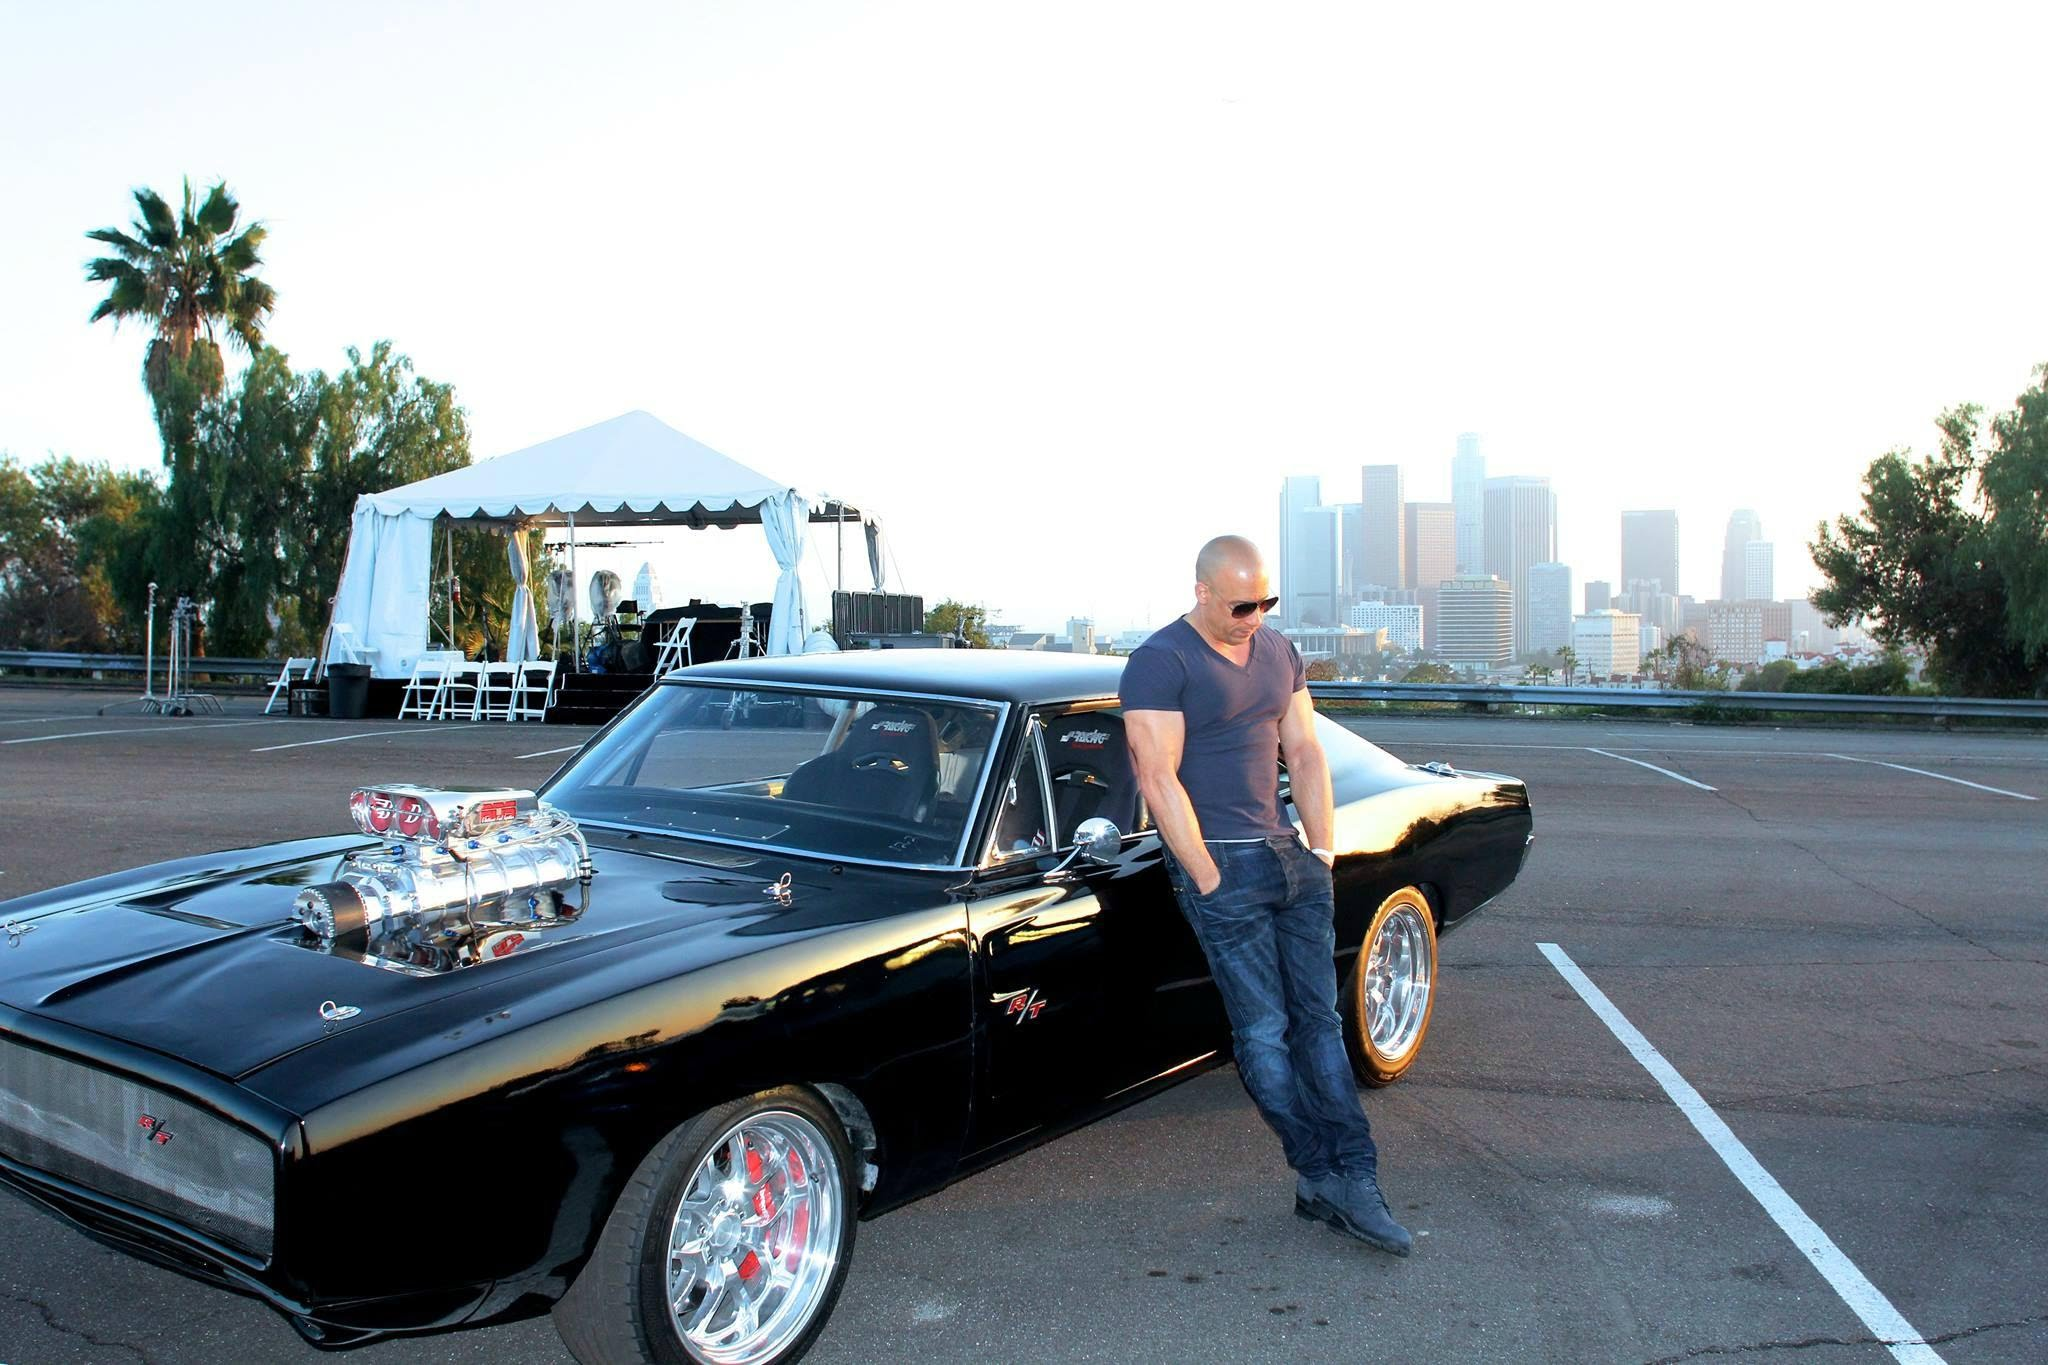 A review of Vin Diesel's 'Fast and Furious' car collection